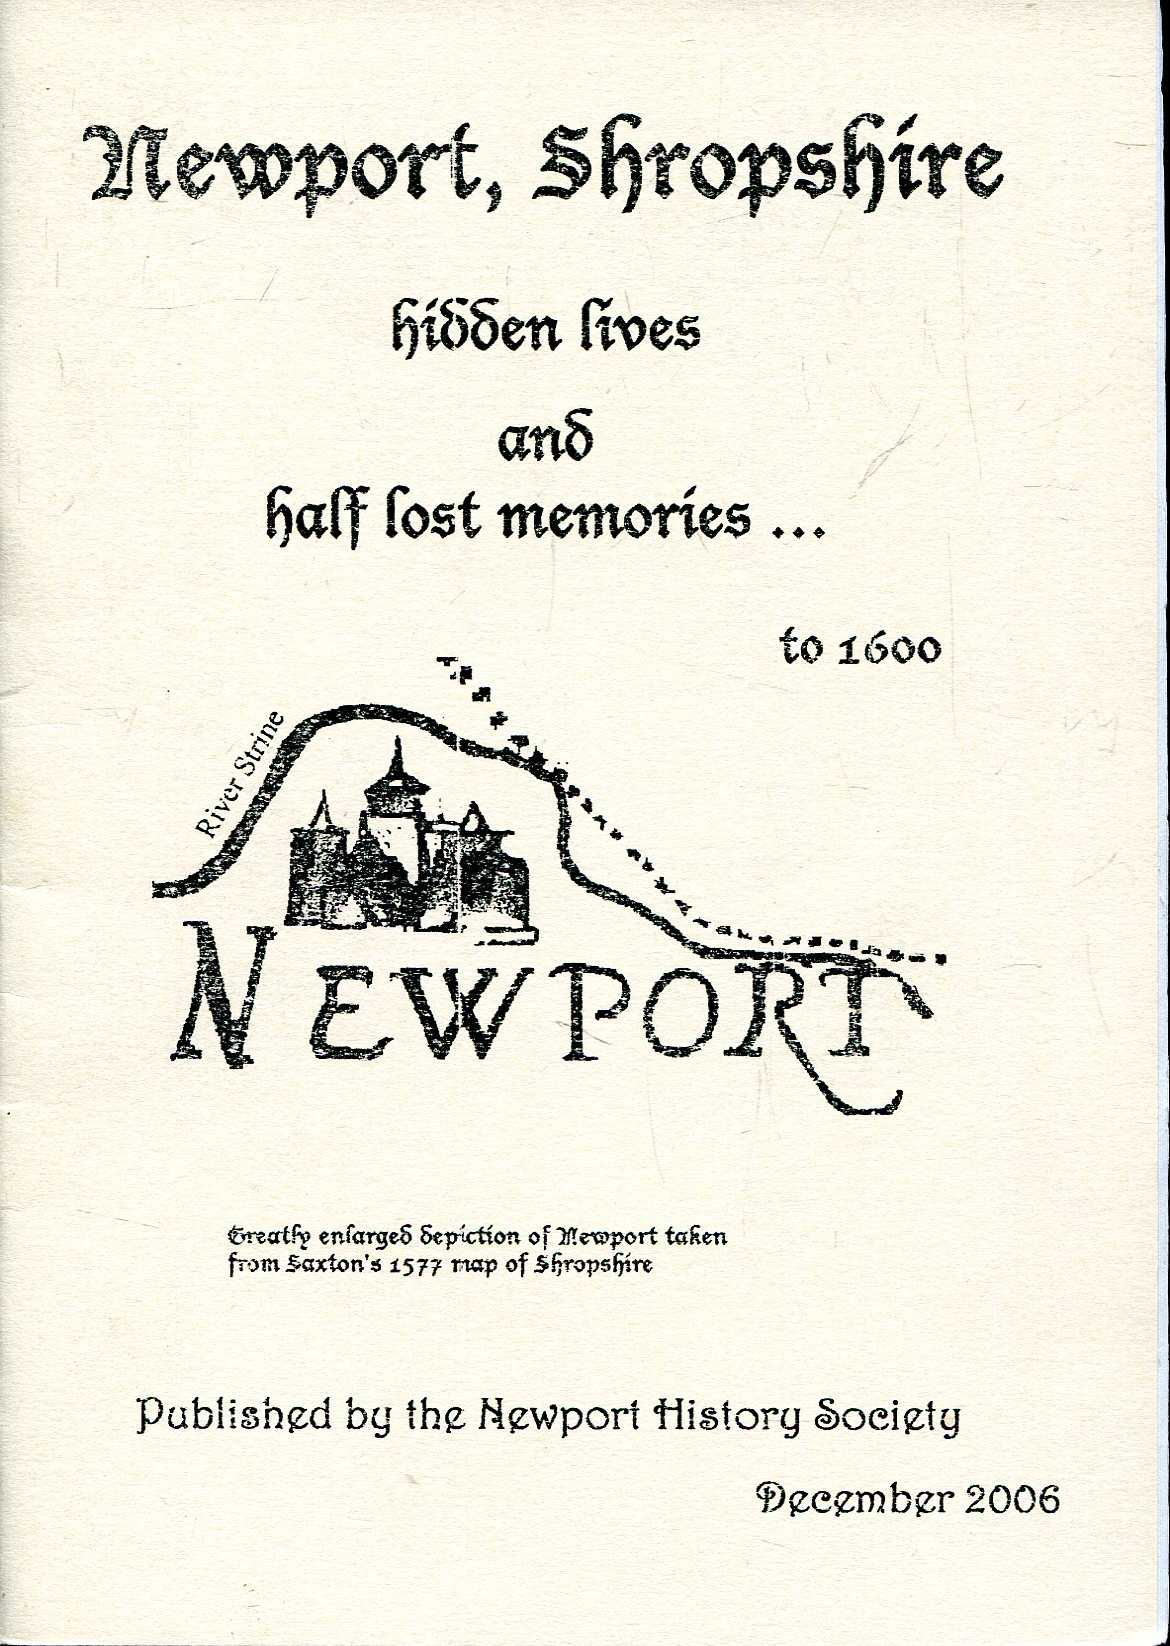 Image for Newport (Shropshire) Hidden Lives and Half Lost Memories ....to 1600